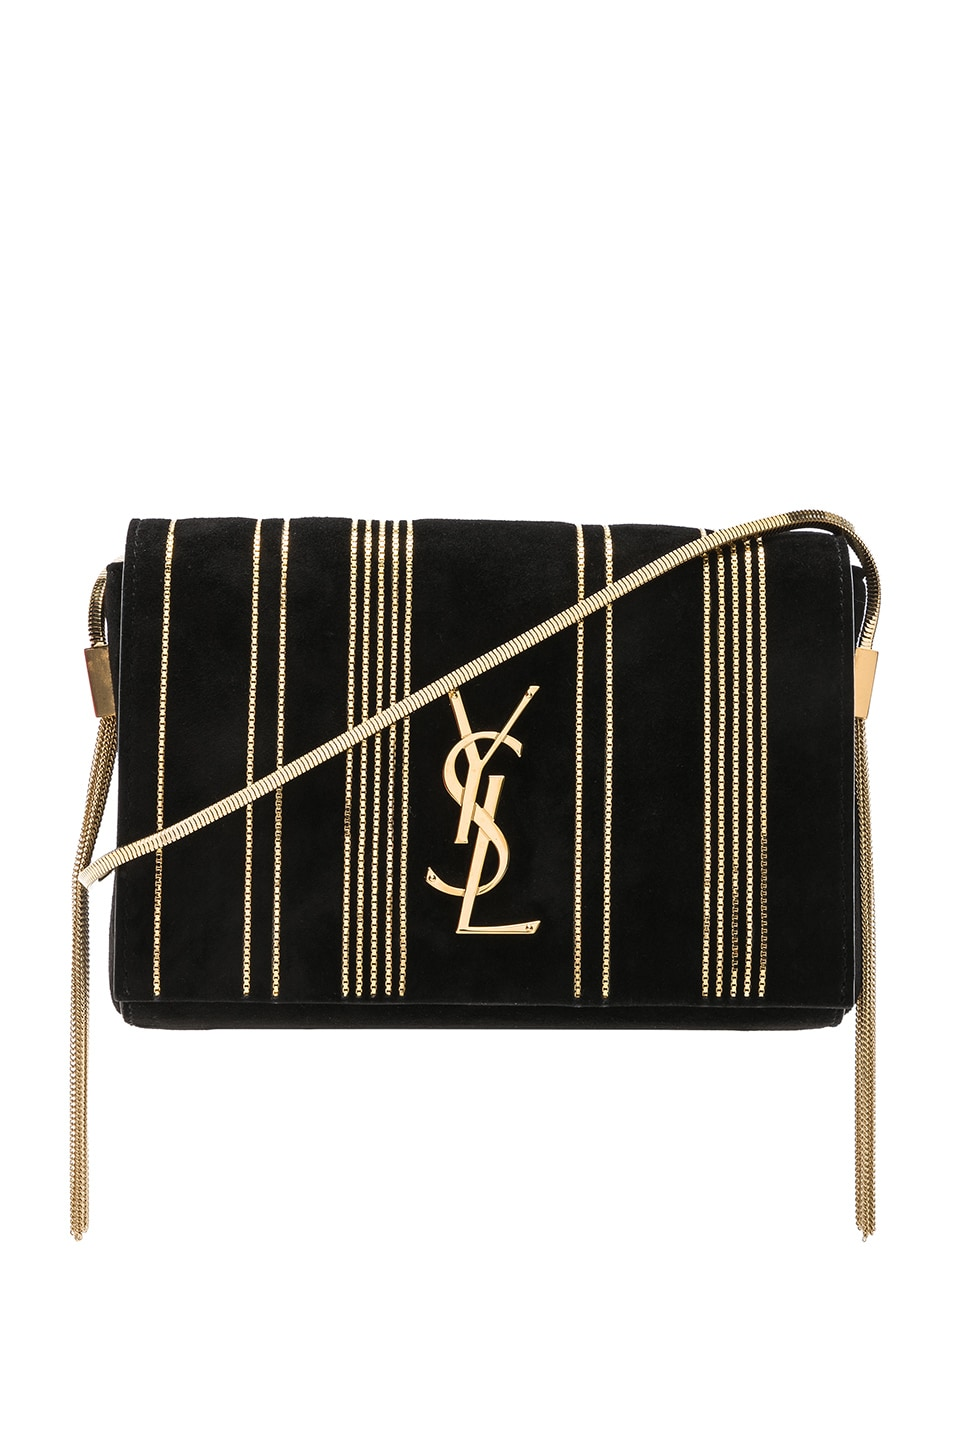 Image 1 of Saint Laurent Small Chain Studded Suede Kate Chain Bag in Black & Gold